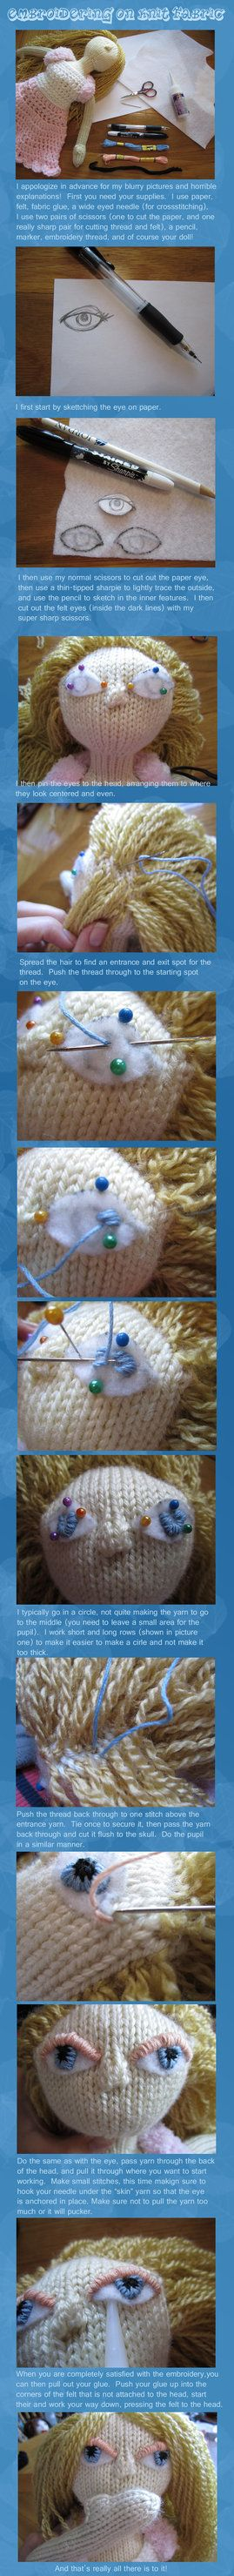 How To Embroider On Knit Fabric Knitted Eyes!